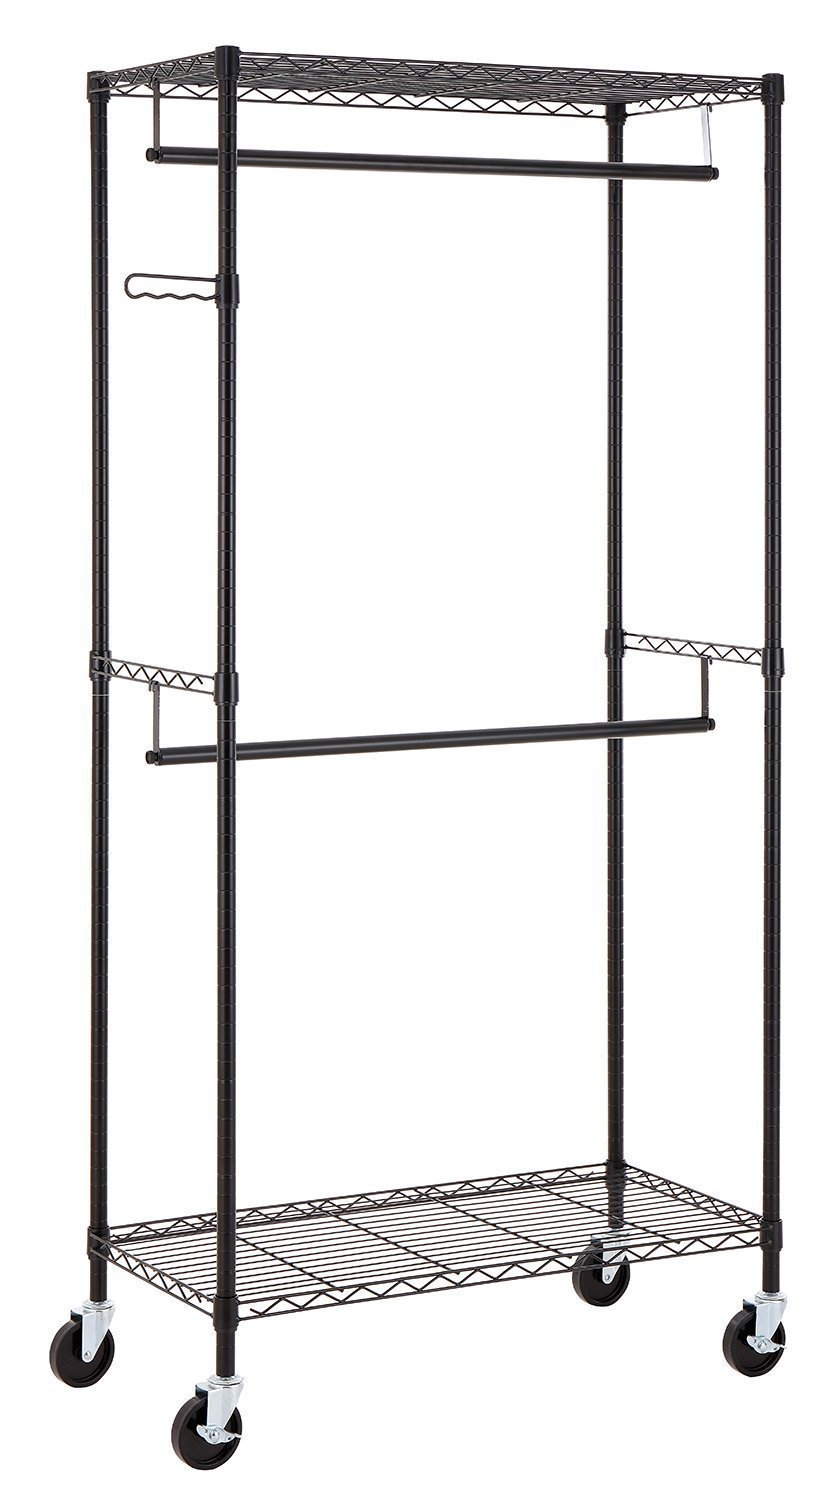 Finnhomy Heavy Duty Rolling Garment Rack Clothes Hangers with Double Rods and Shelves, Black Thicken Steel Tube